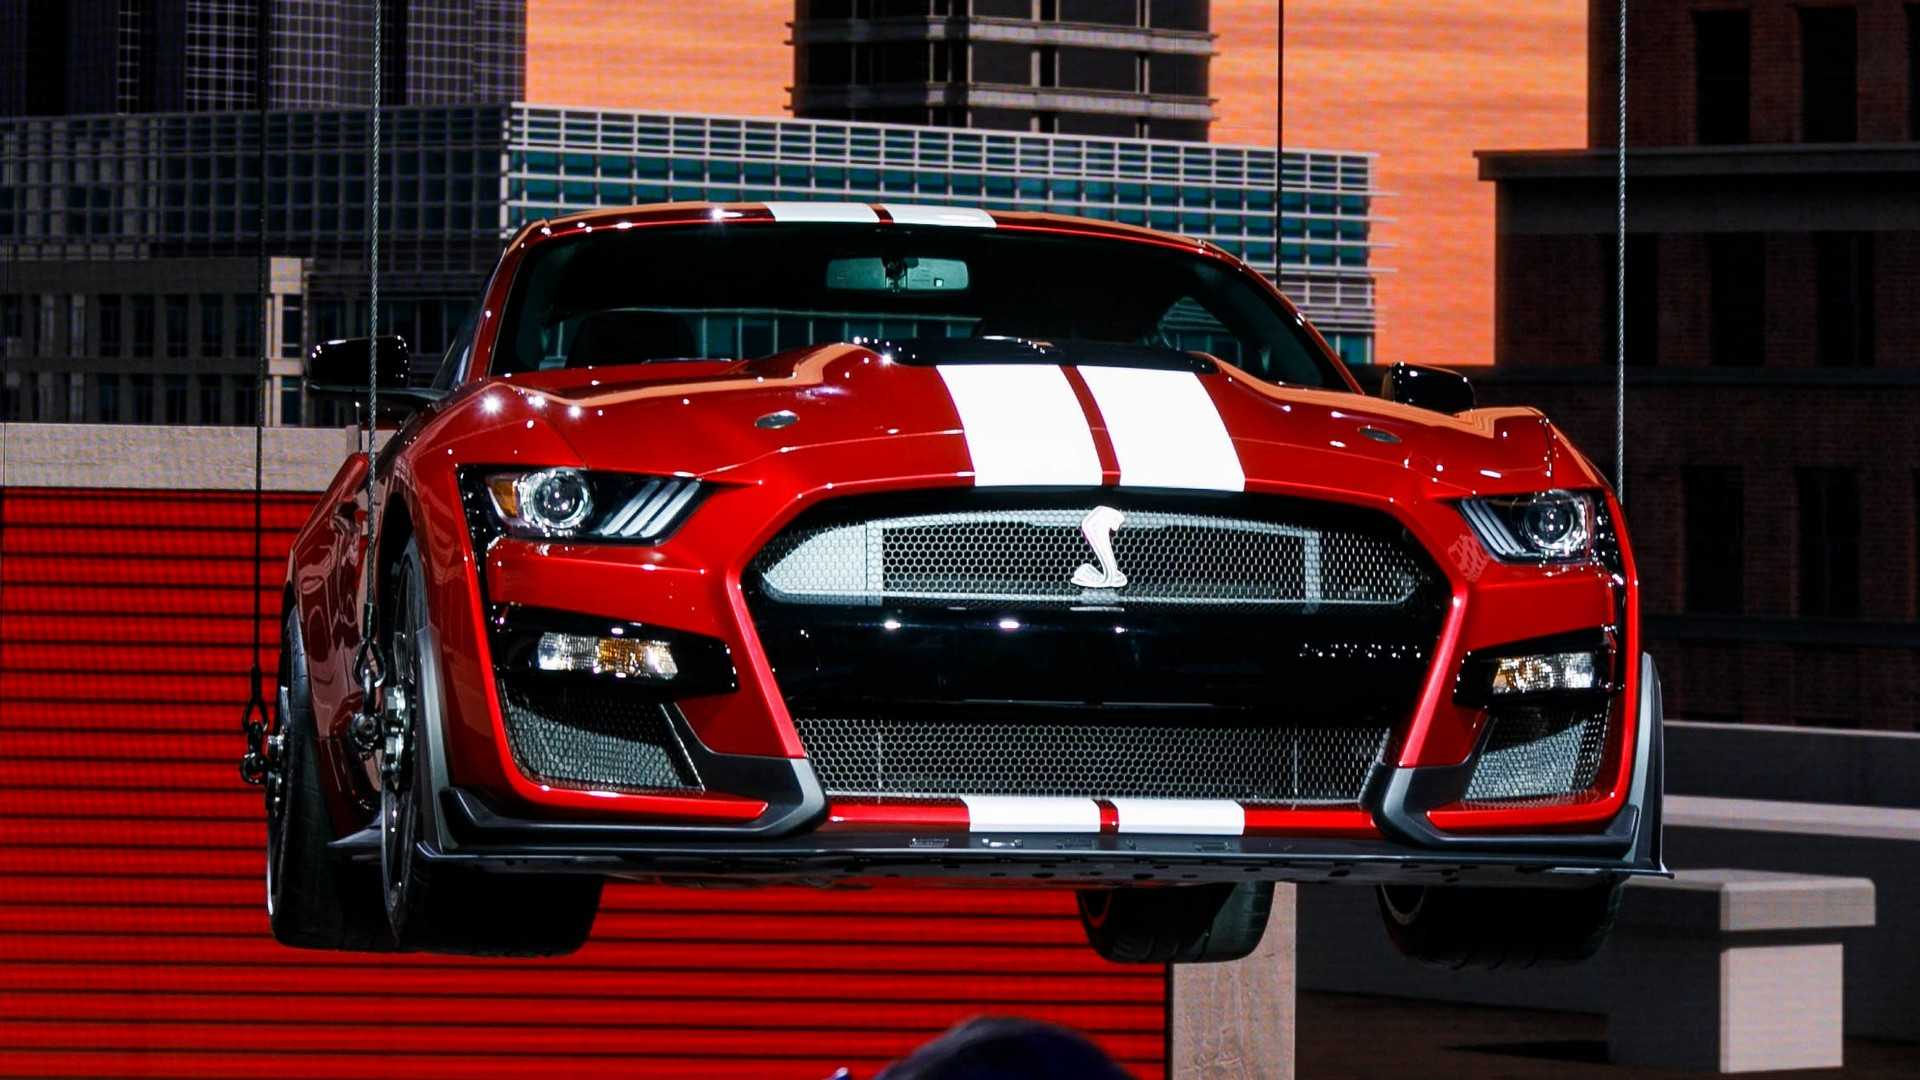 62 All New 2020 The Spy Shots Ford Mustang Svt Gt 500 First Drive